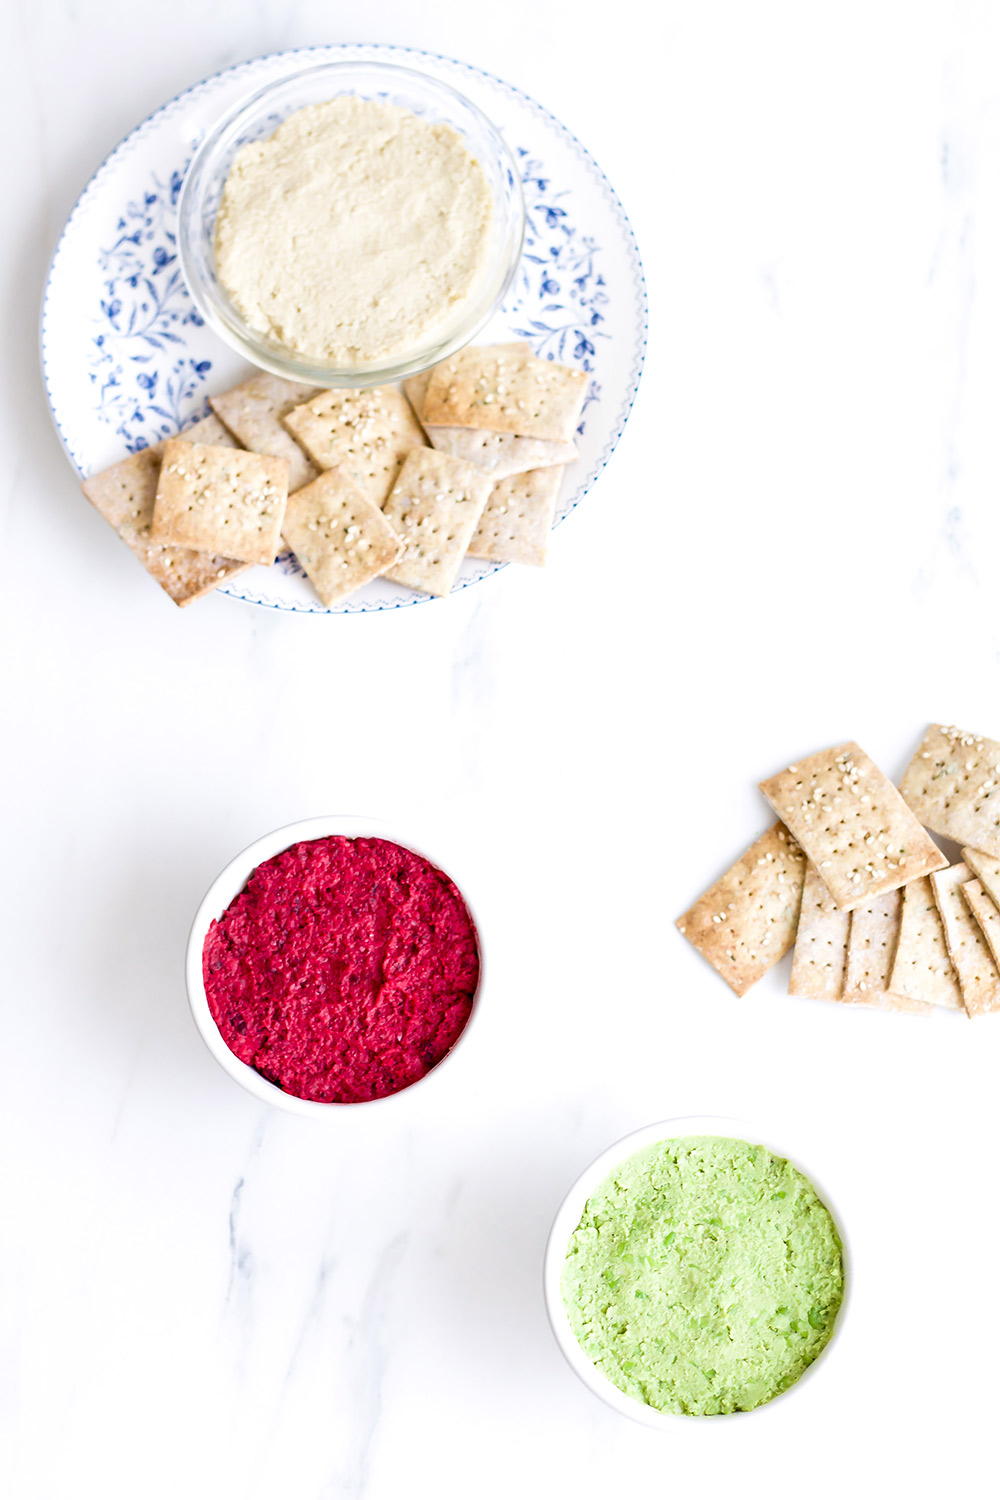 Healthy Hummus 3 Ways: Three protein-packed hummus recipes filled with healthy ingredients to reduce inflammation! https://www.spotebi.com/recipes/healthy-hummus-three-ways/